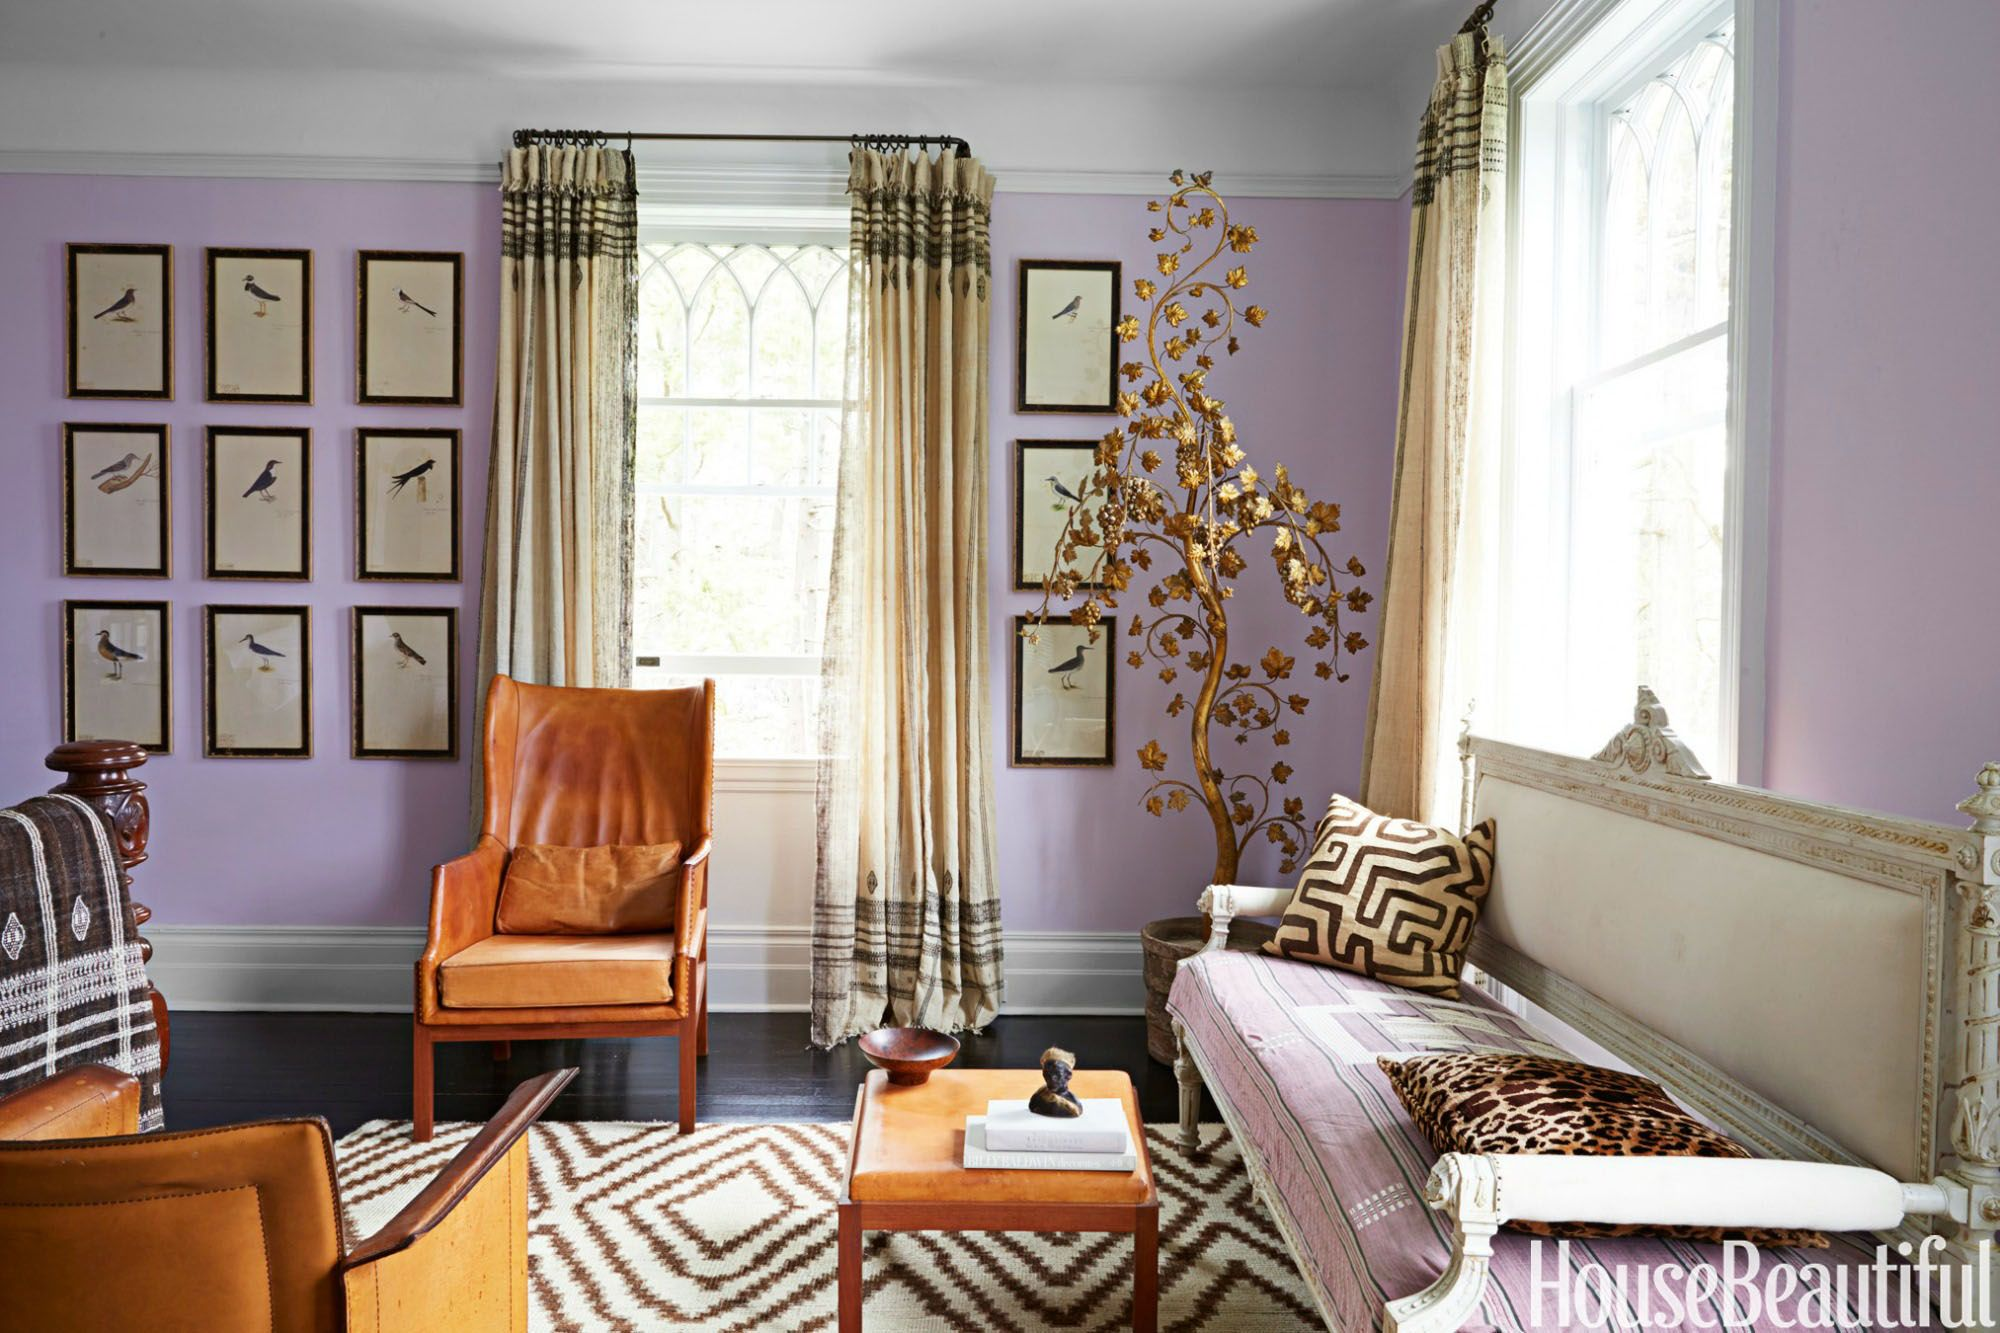 Beautiful 16 Best Living Room Colors 2017 In 2020 Living Room Colors Room Colors Home Decor